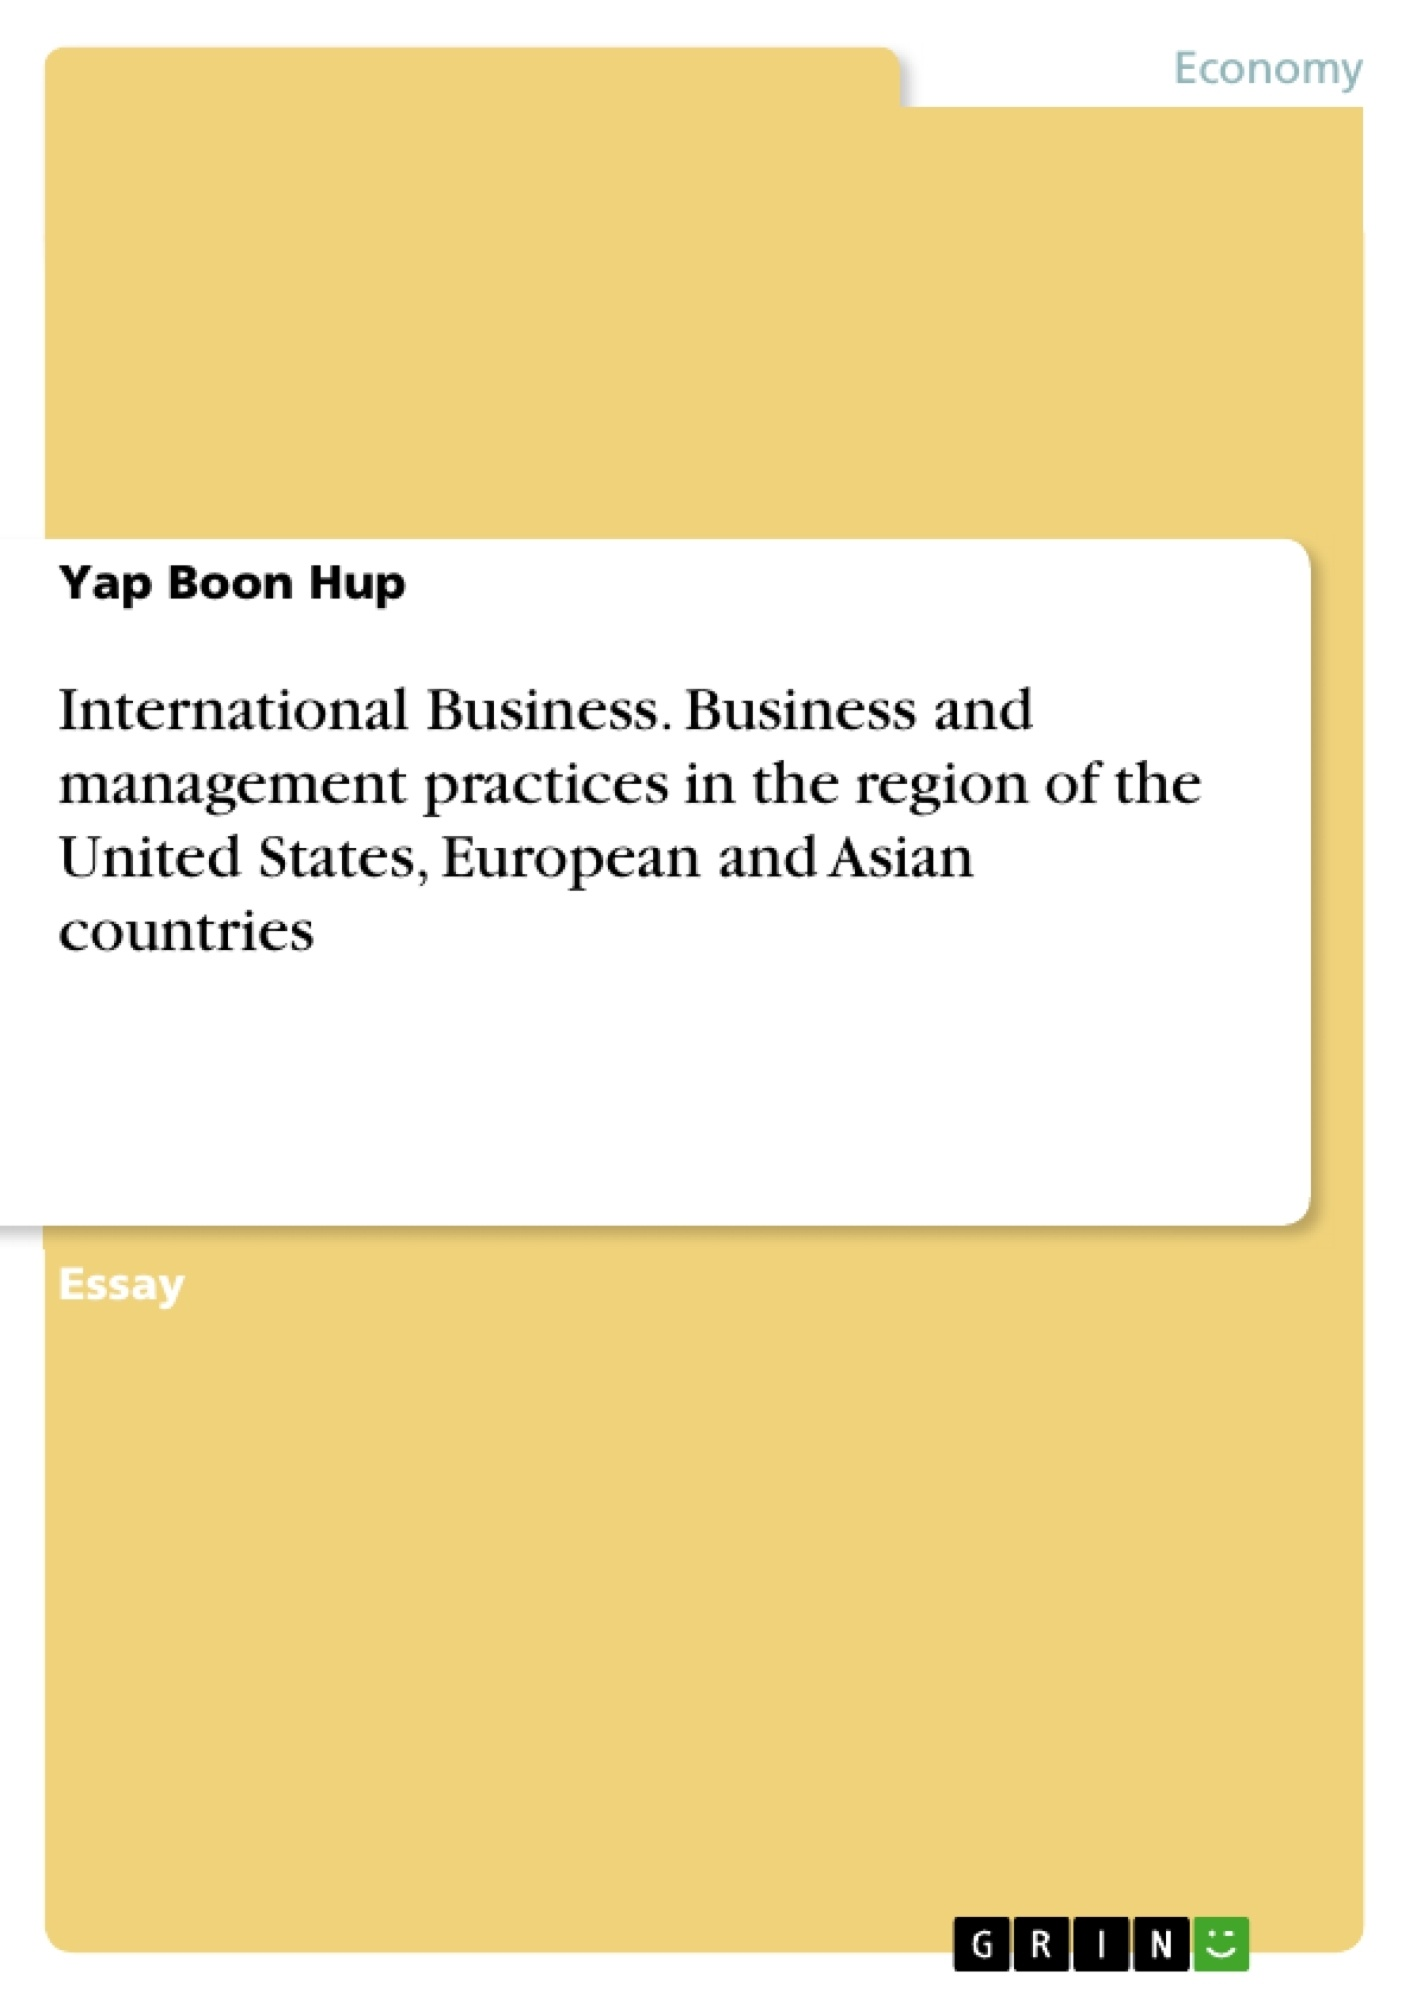 Title: International Business. Business and management practices in the region of the United States, European and Asian countries